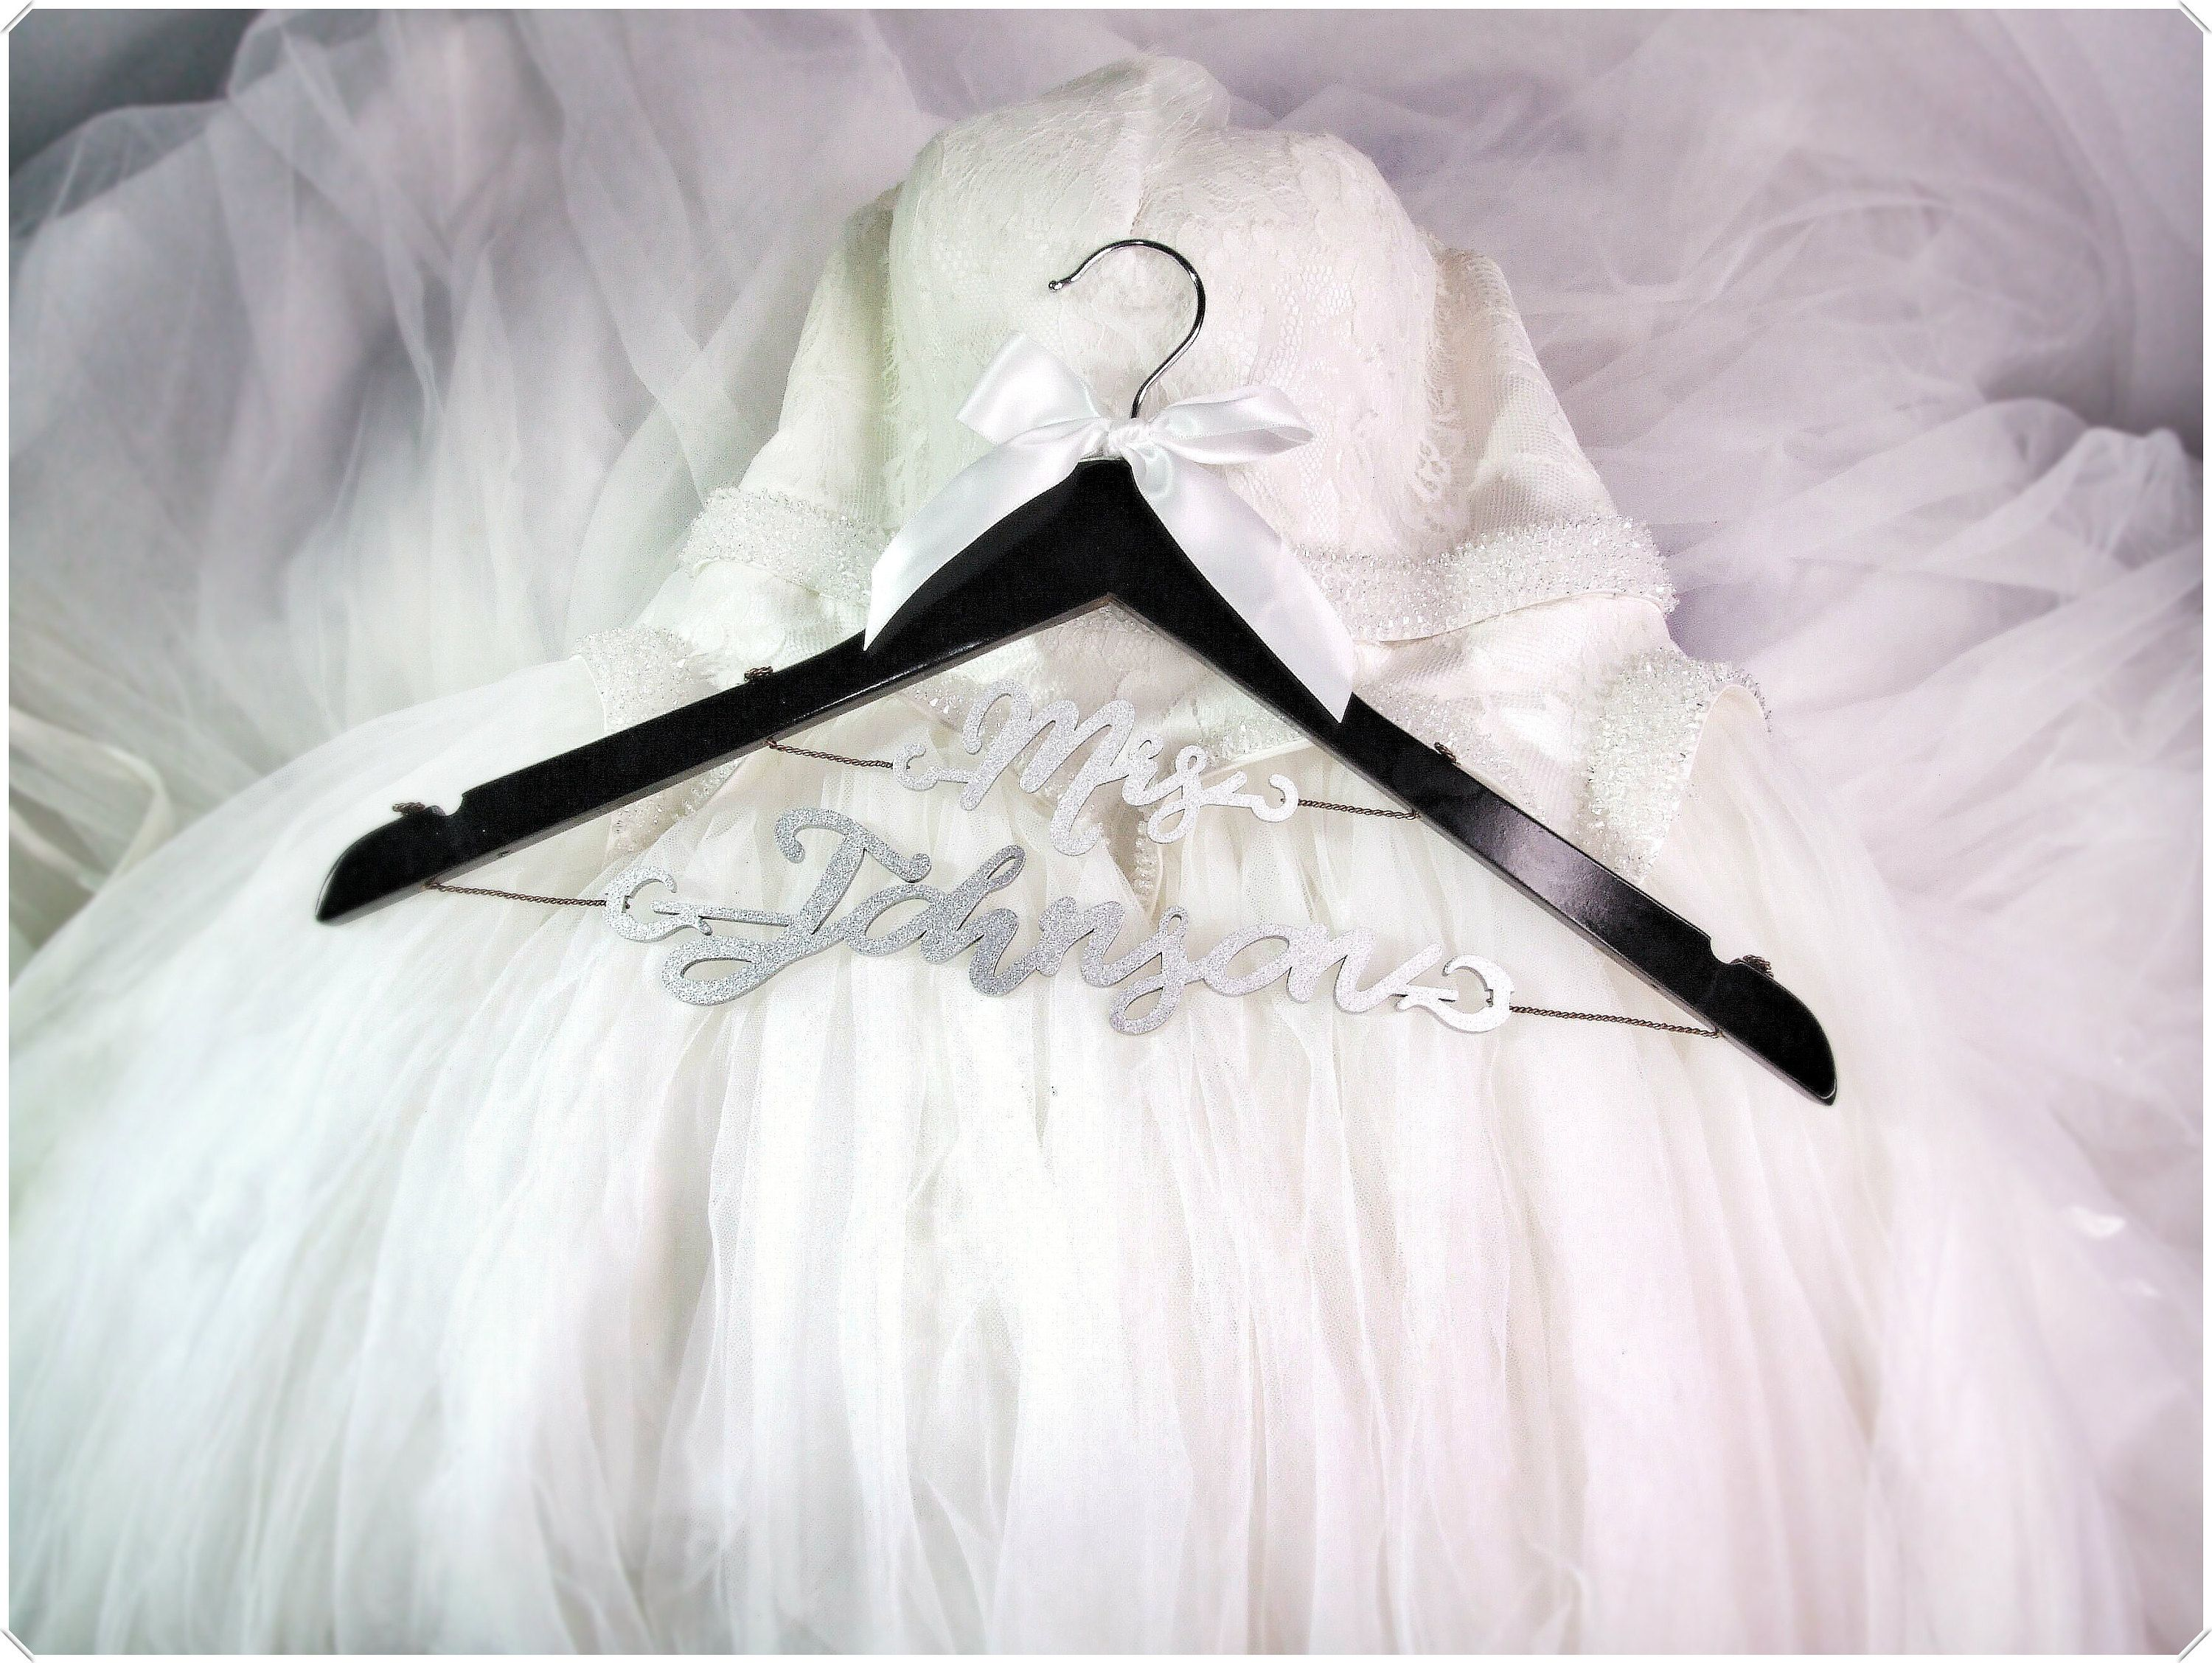 A handcrafted personalized wedding hanger for your wedding gown or wedding dress Custom bridal hanger